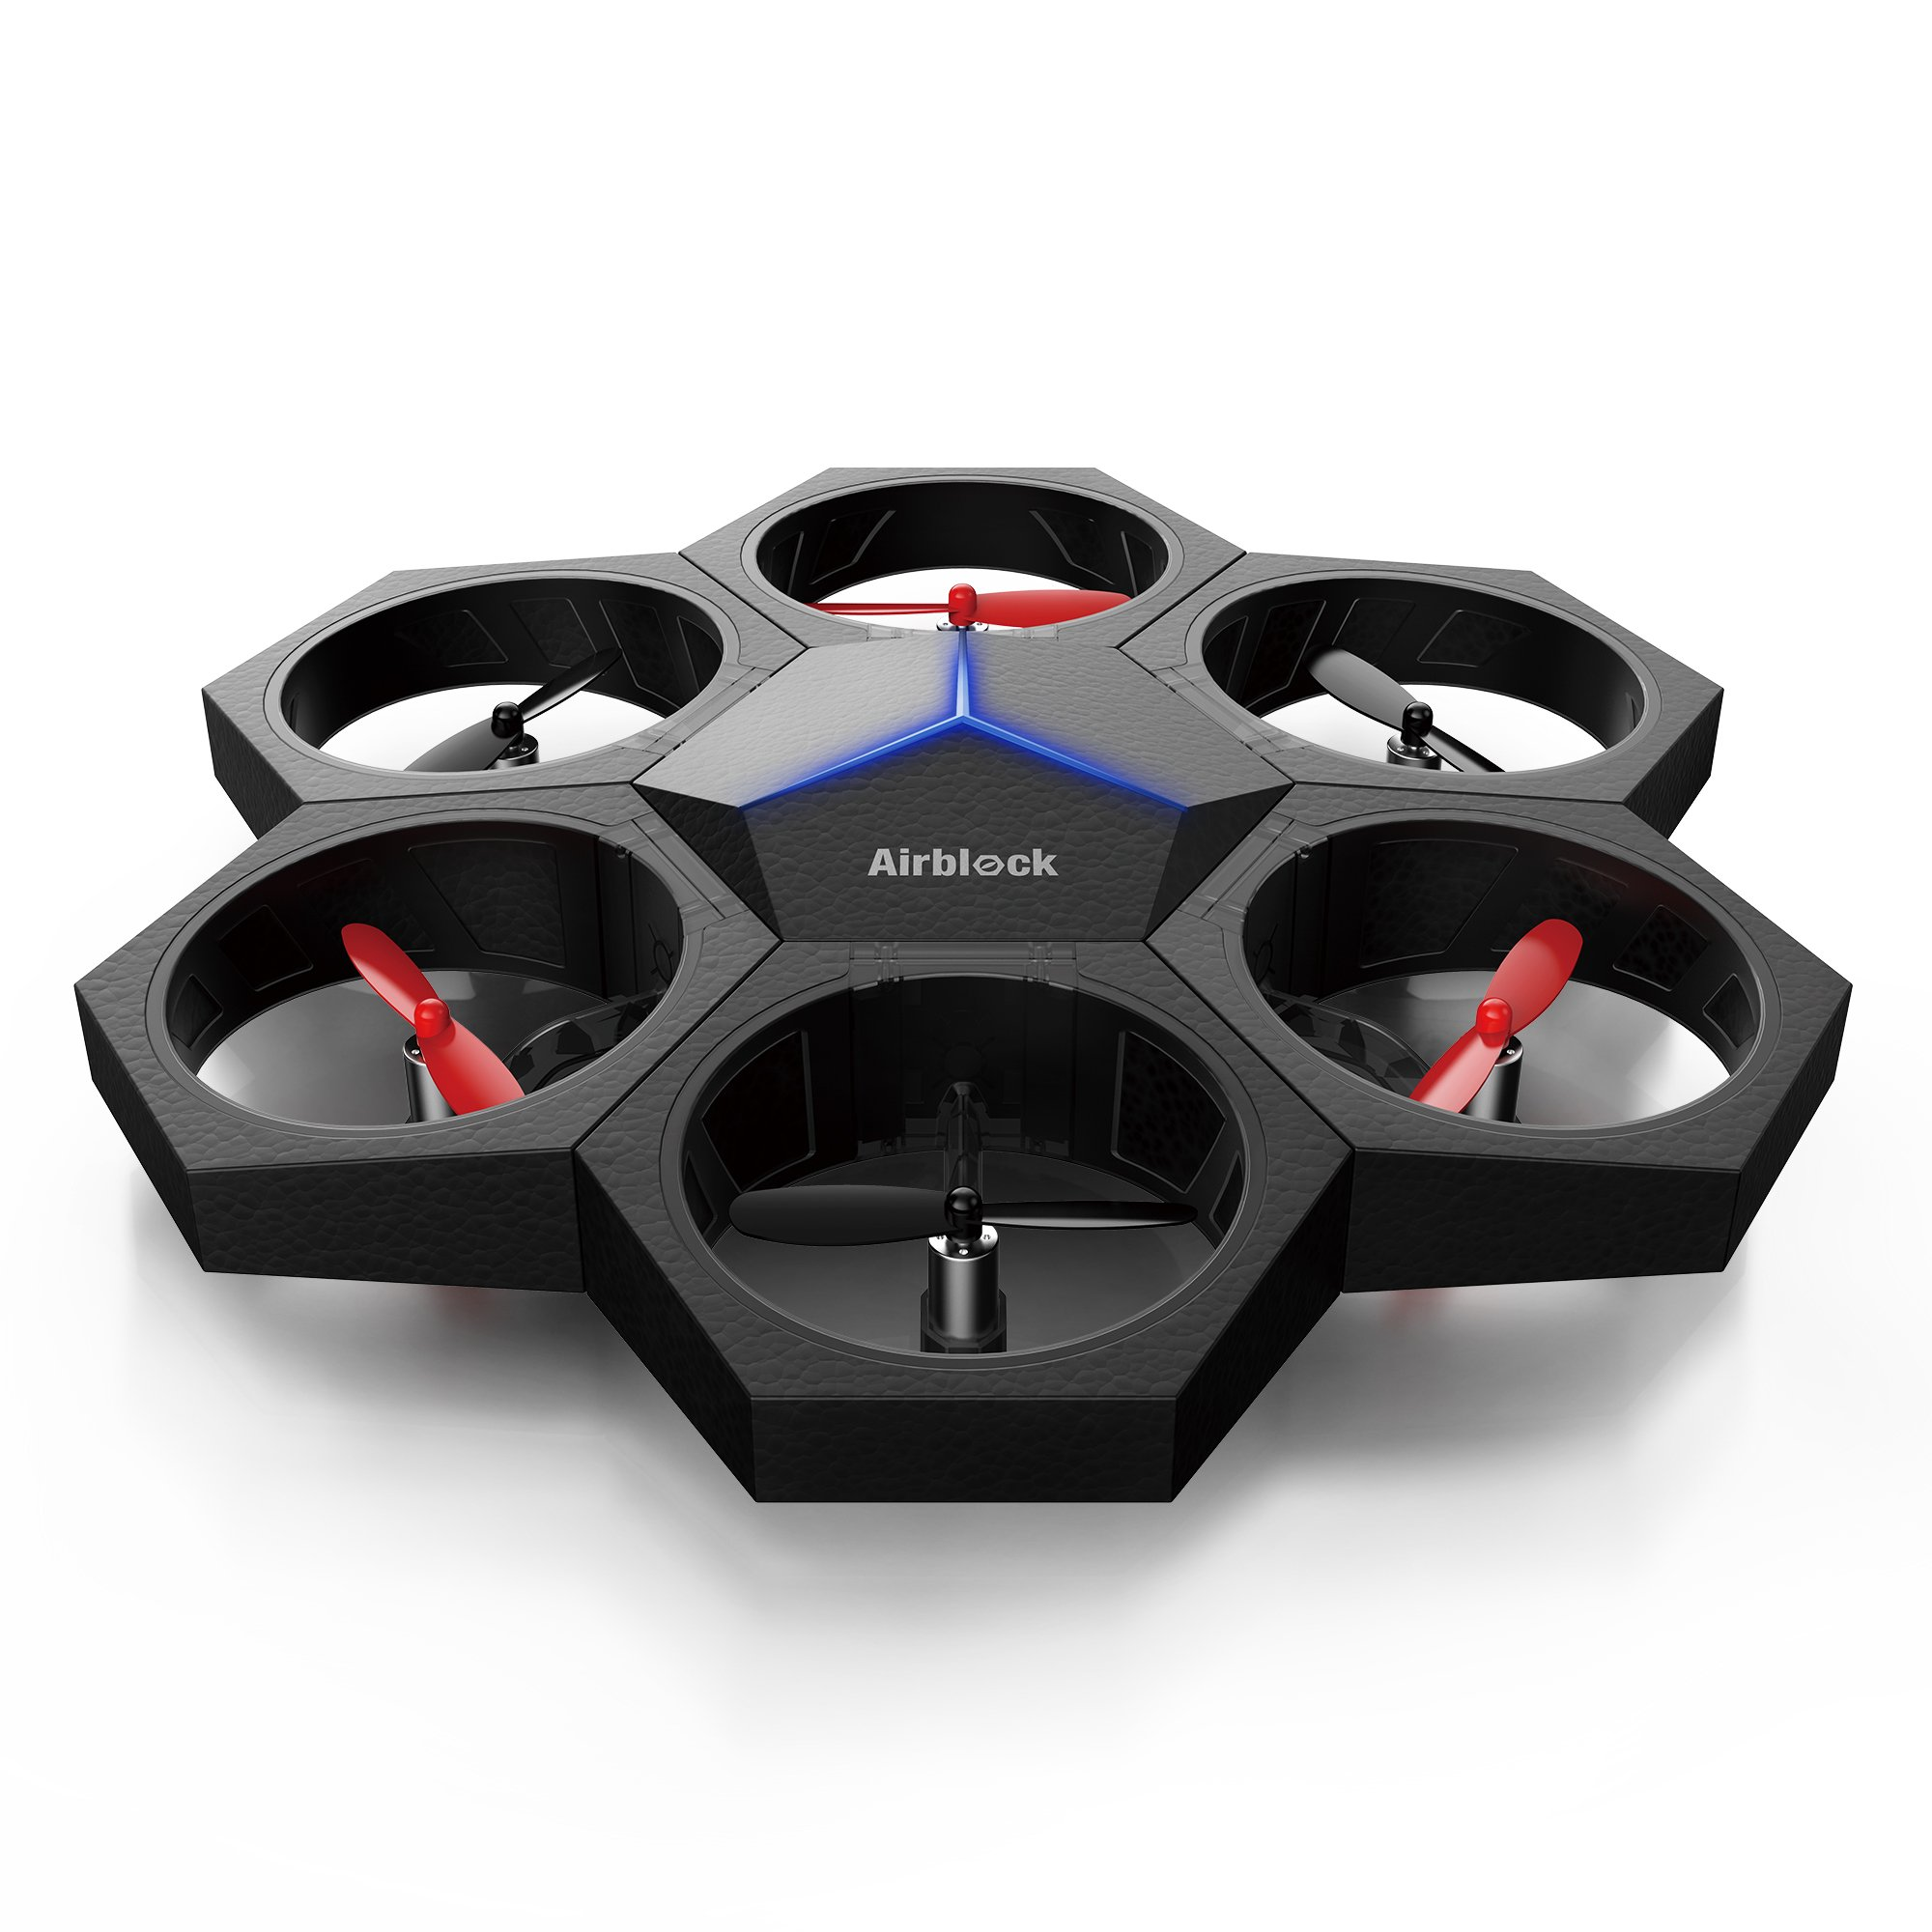 Makeblock Airblock Transformable Drone/Hovercraft Robot for Kids. Multi-Form Programmable Toy for Kids Easily Transform to Vehicle and More, No Experience Needed, Easily Assembled and Safe Structure